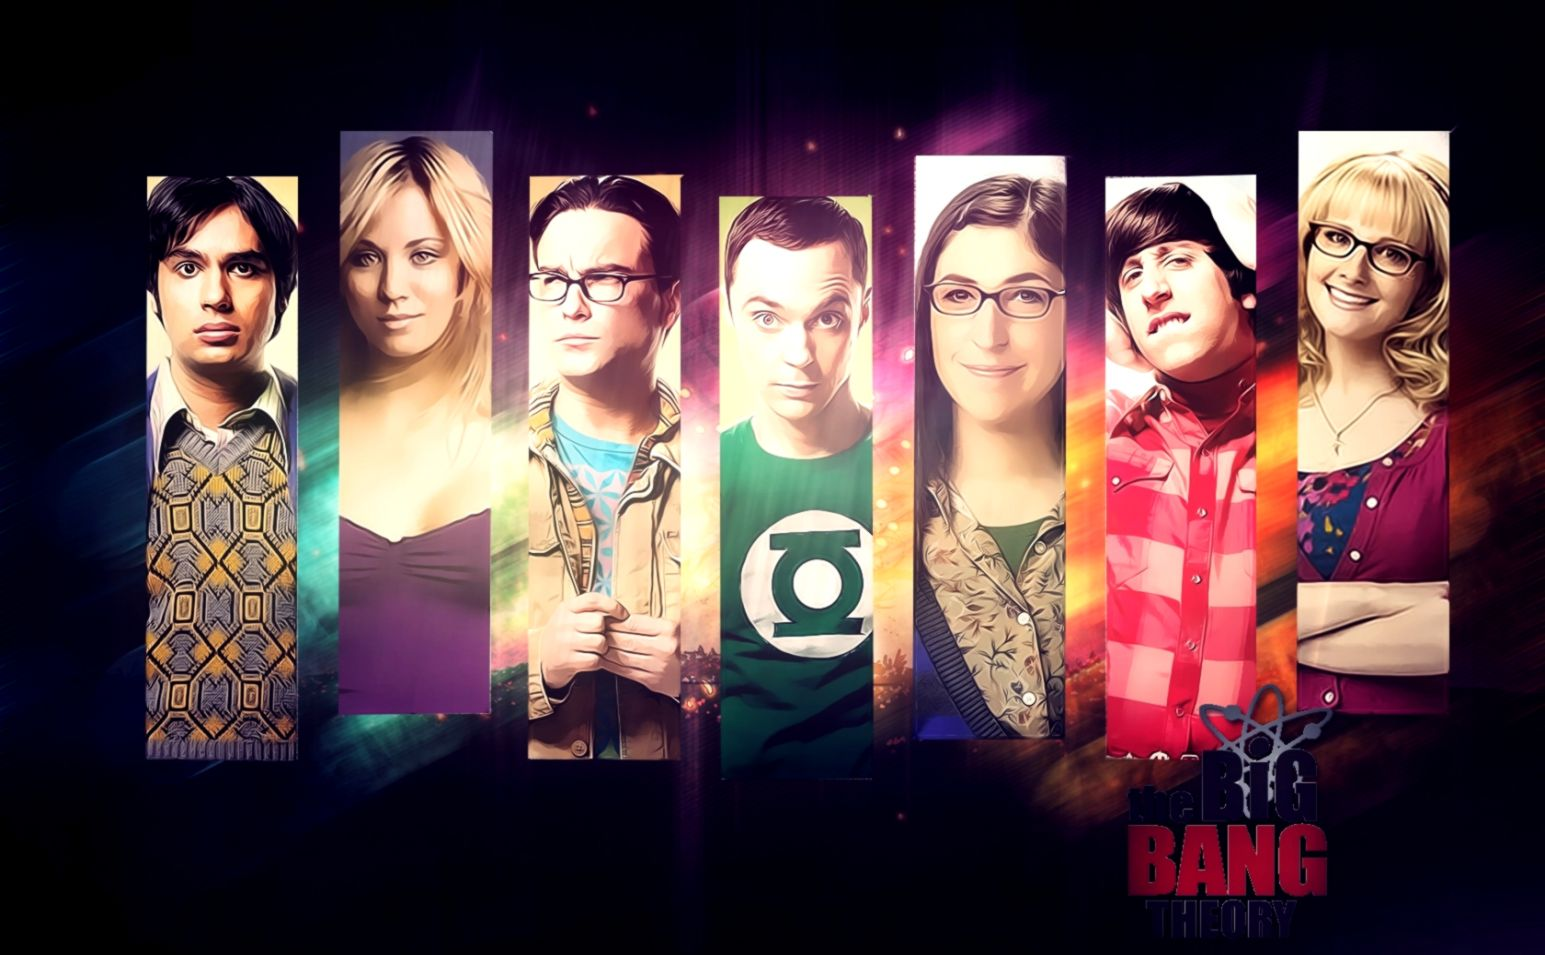 Big Bang Theory Wallpaper Spot Wallpapers